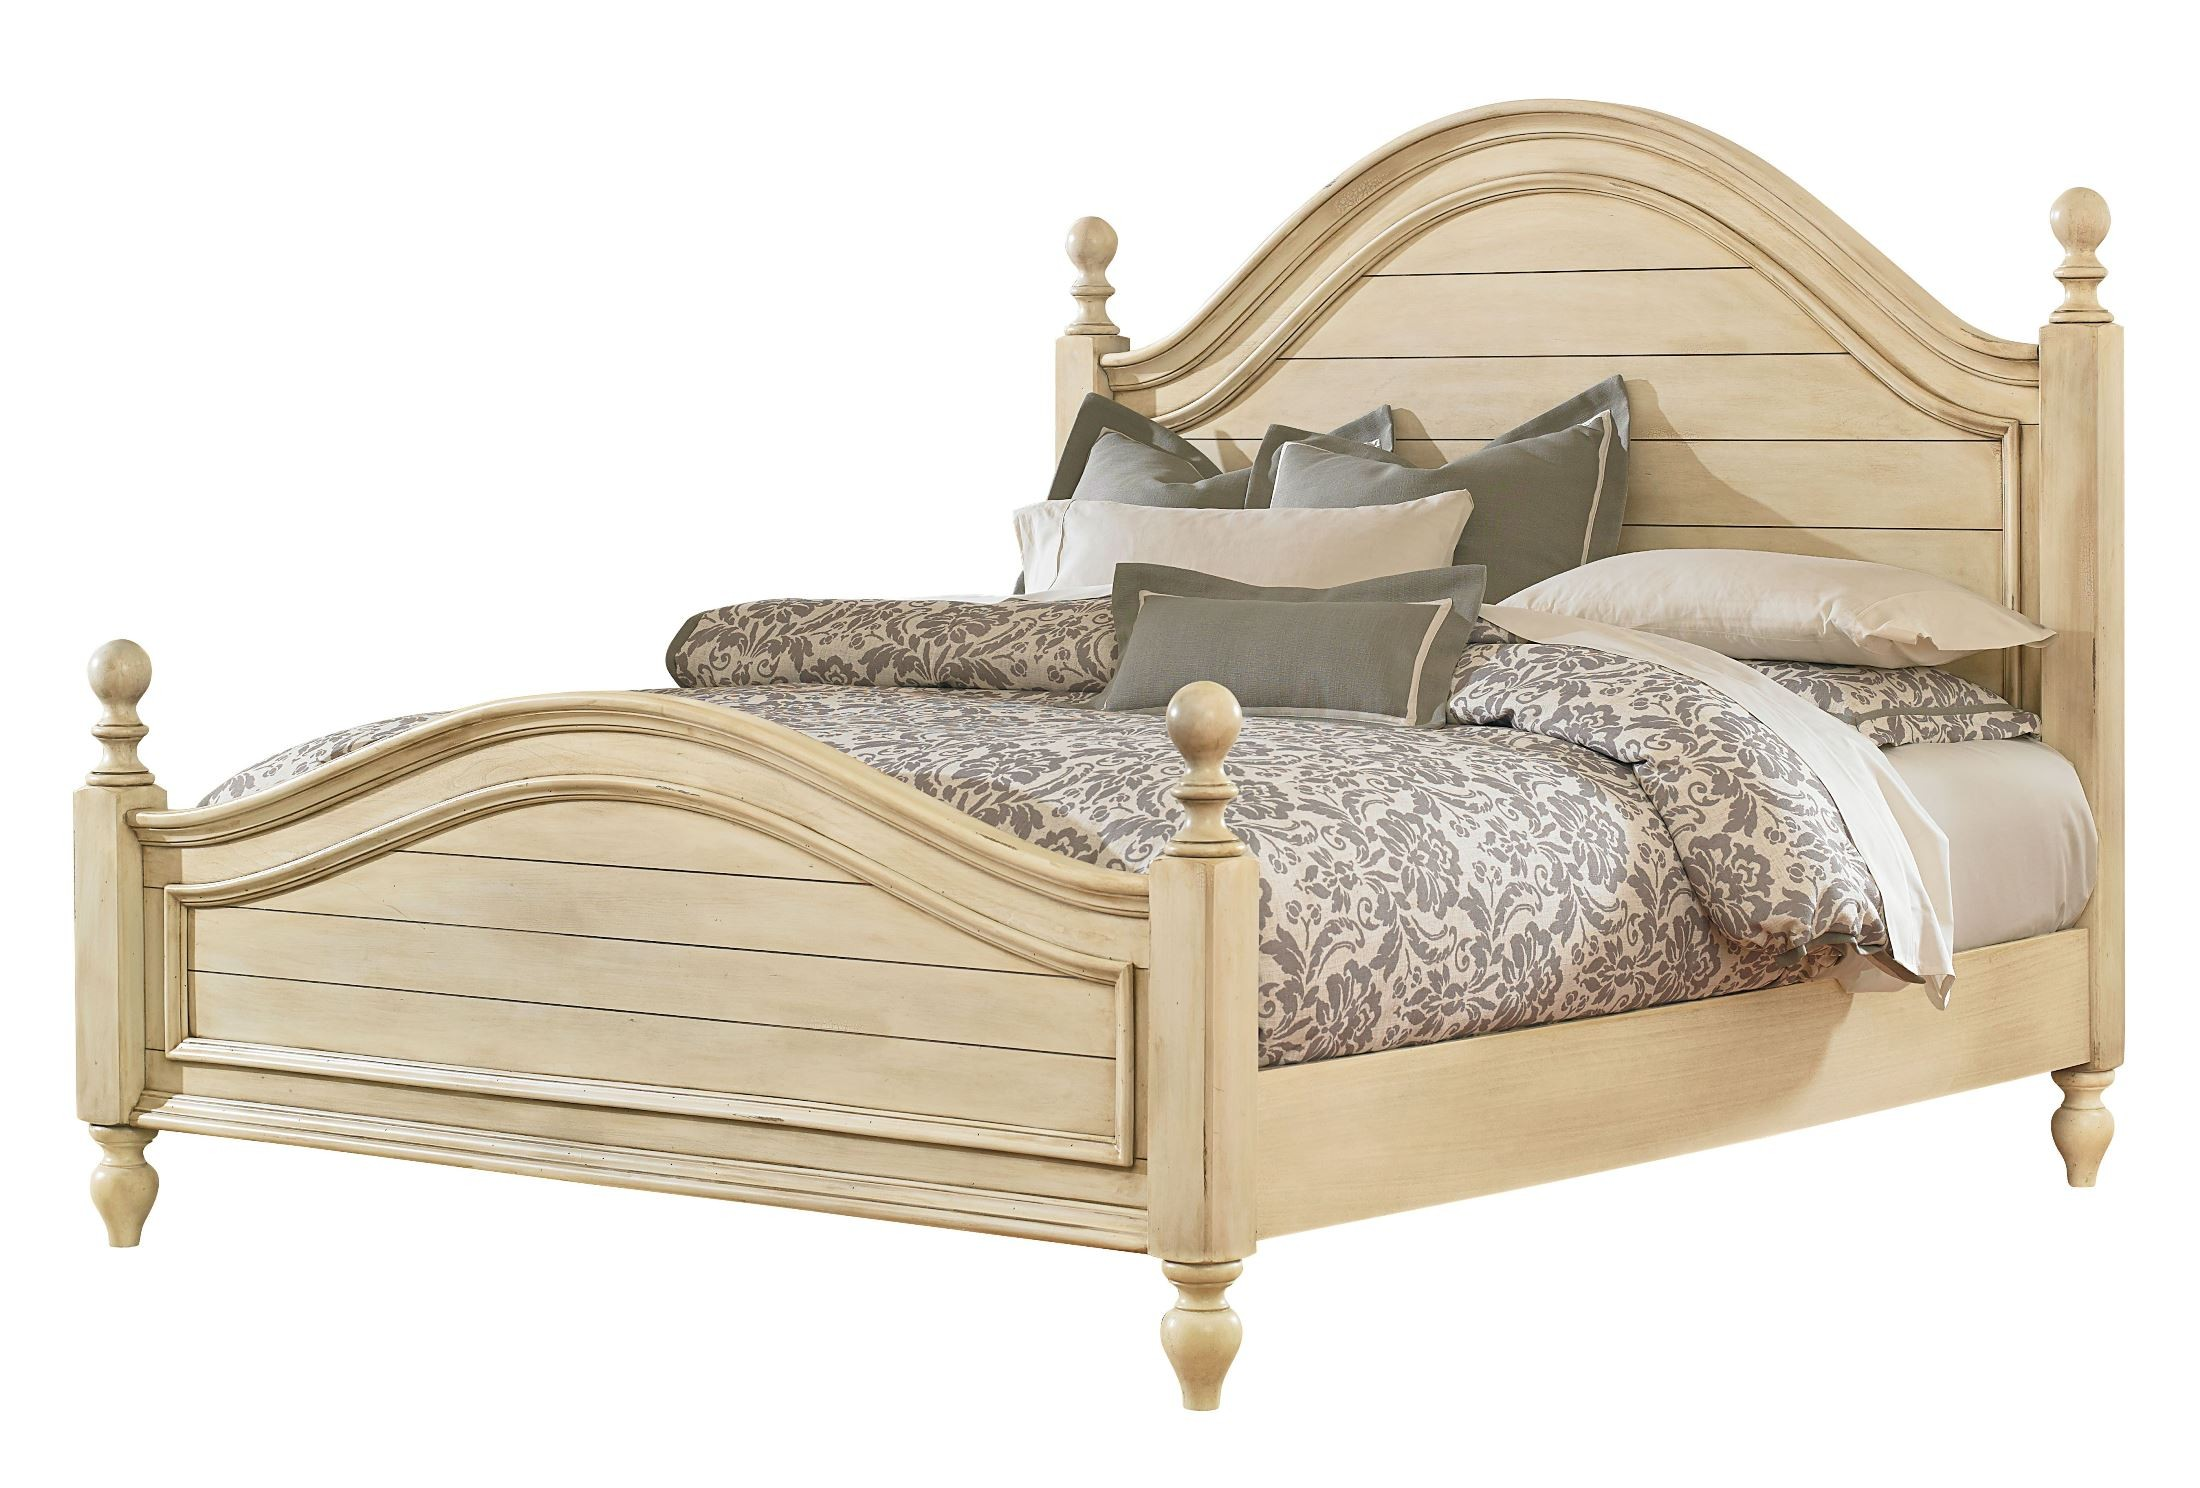 chateau antique french bisque poster bedroom set from standard (82850) | coleman furniture